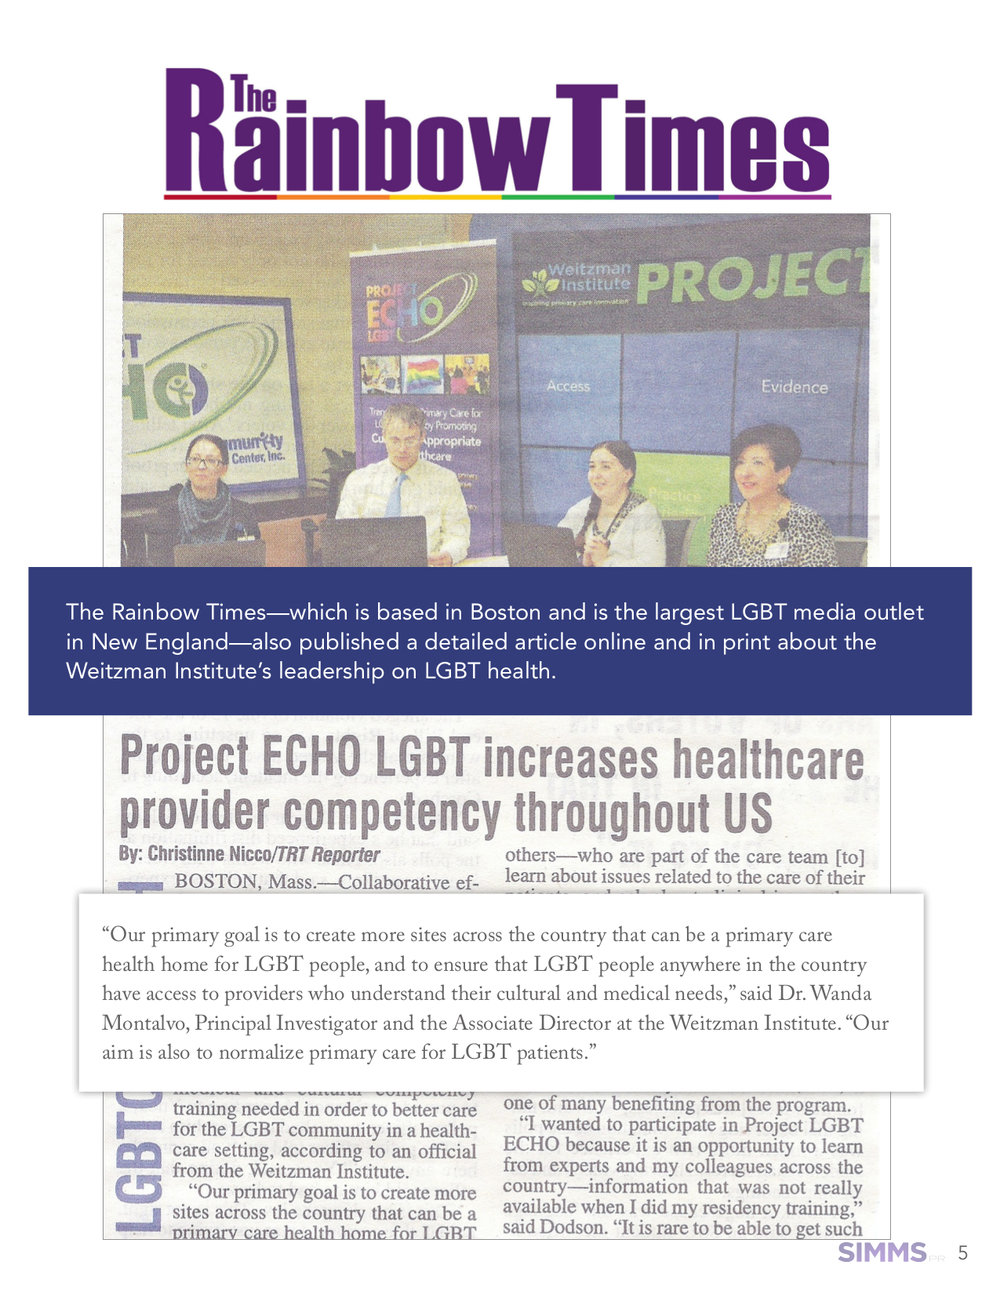 Read this article on the Rainbow Times website.